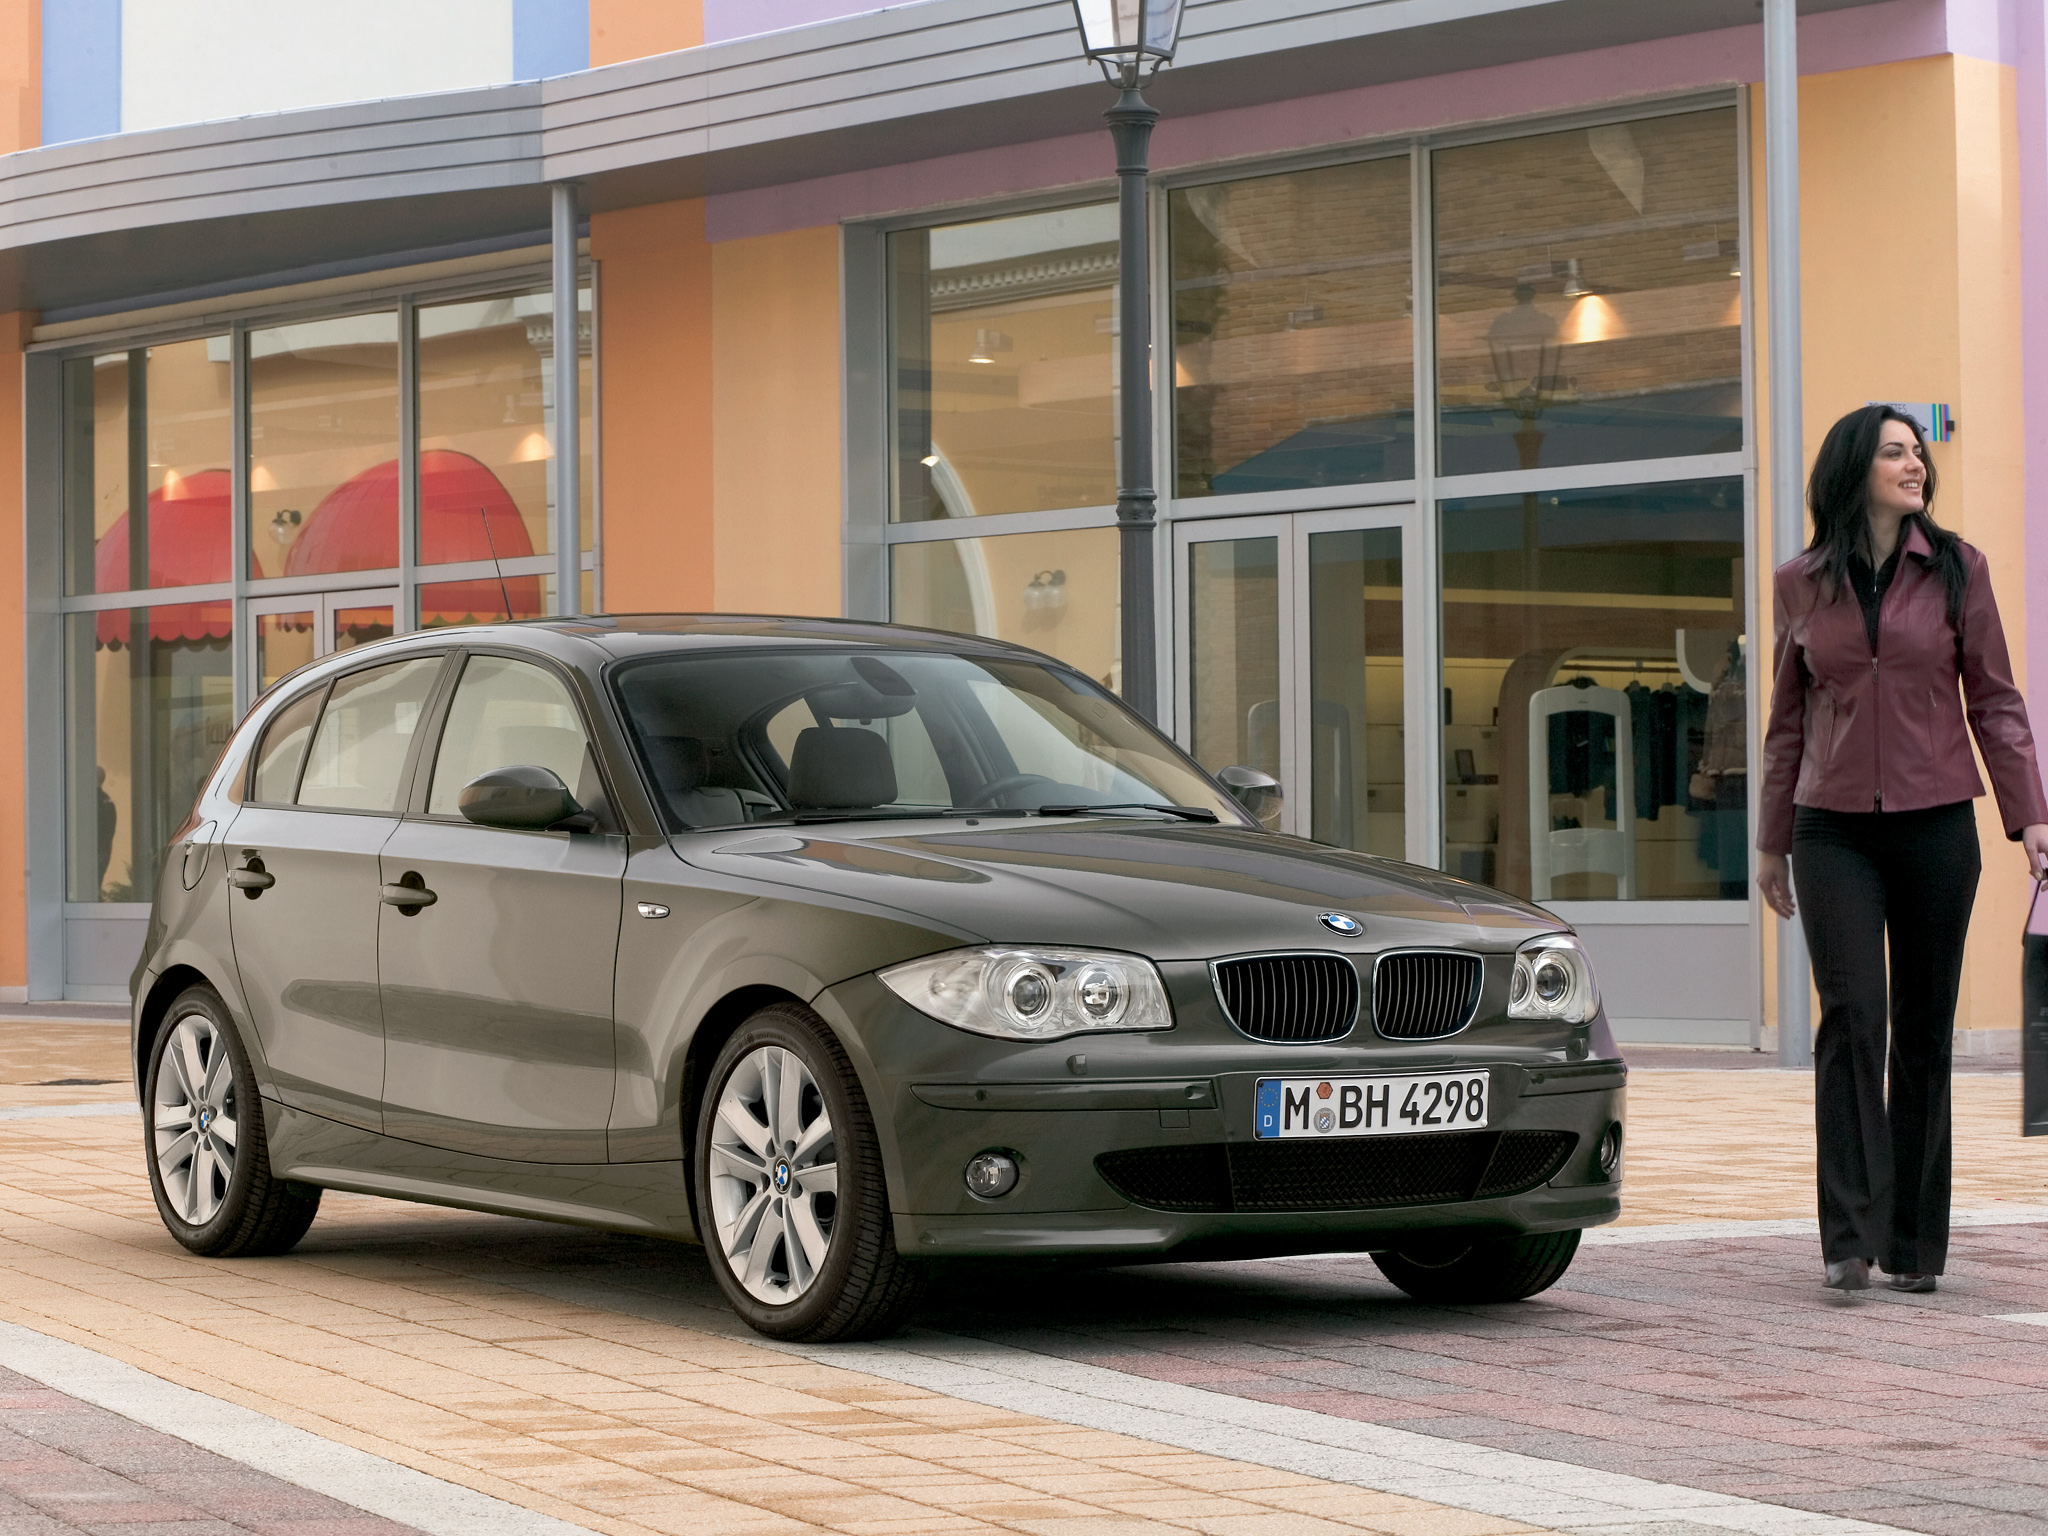 BMW 1 series 120d 2004 photo - 12